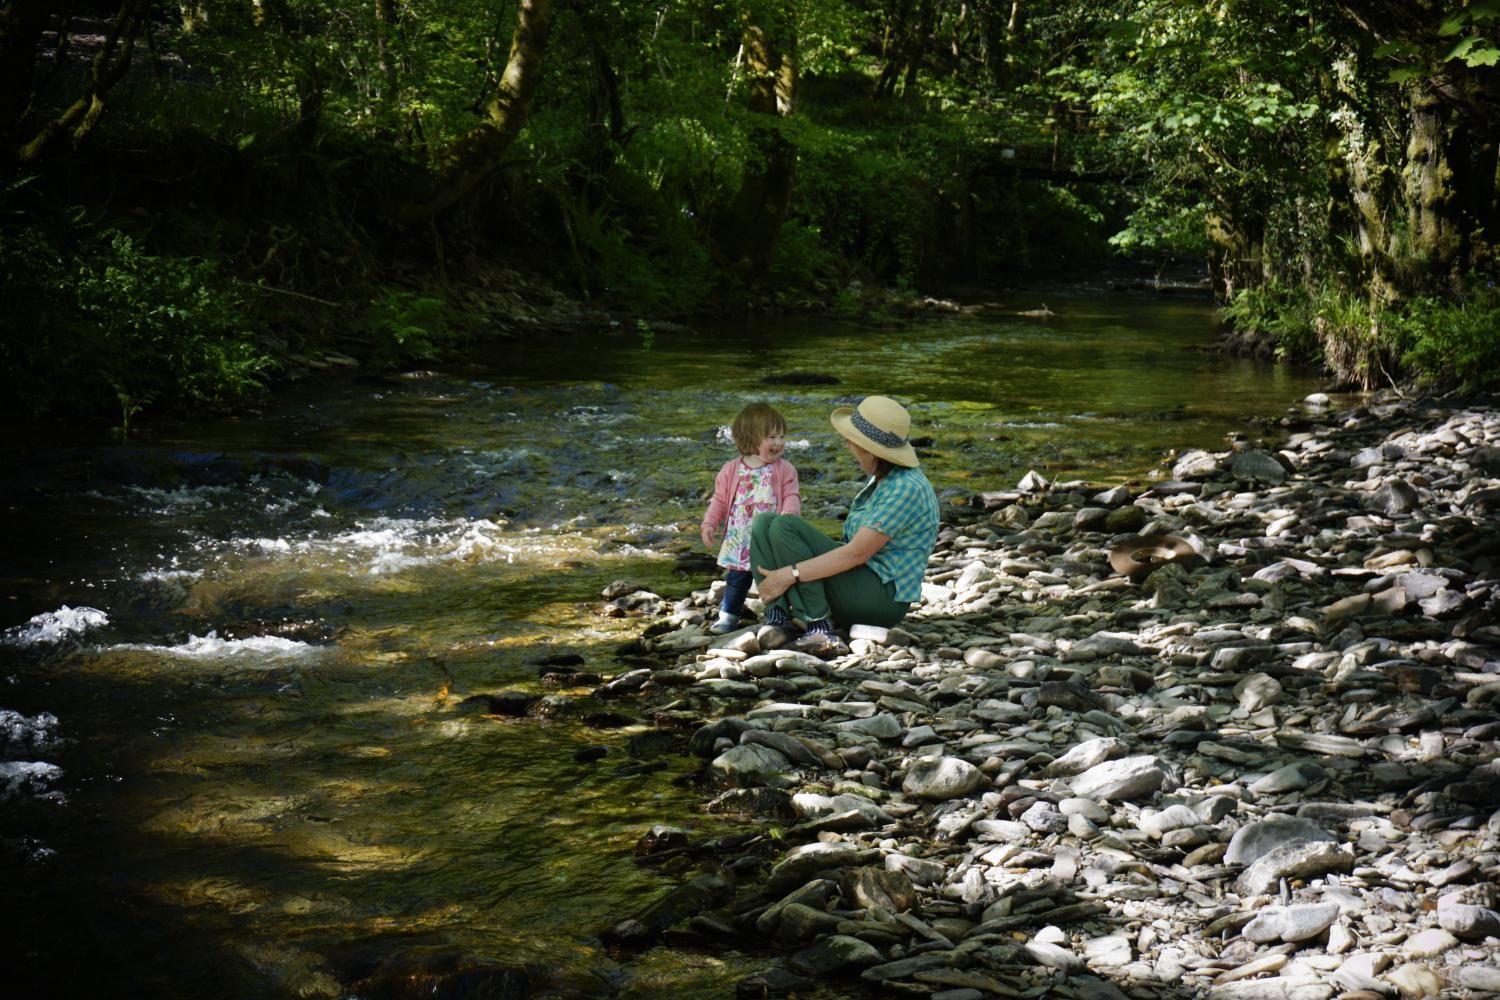 The River Bray. One mile of trout fishing on both banks available by request